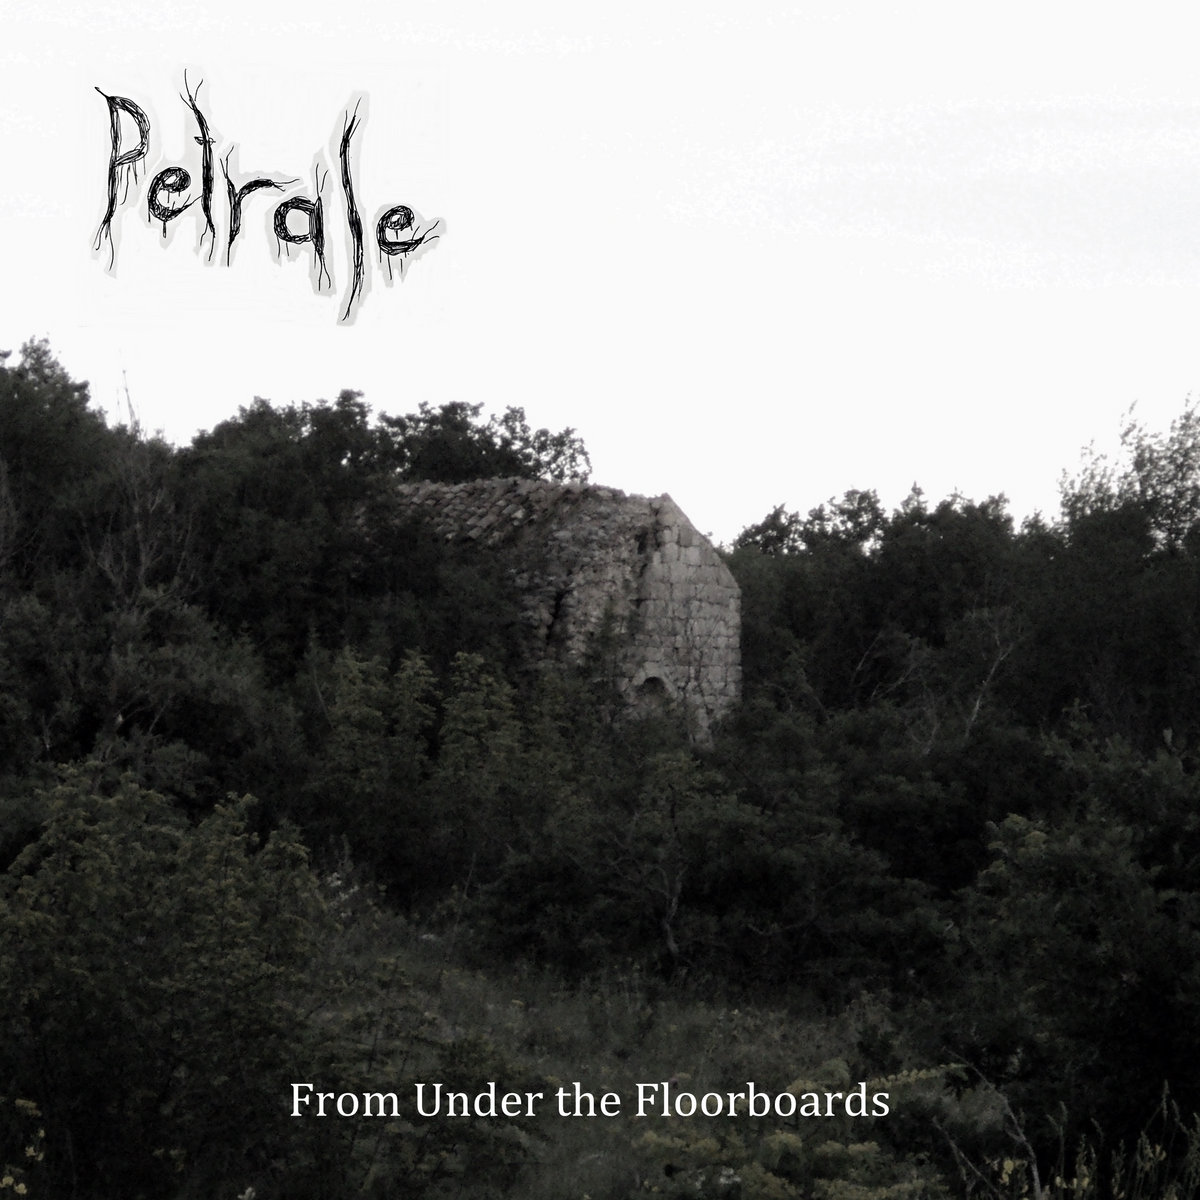 https://petrale.bandcamp.com/album/from-under-the-floorboards-2